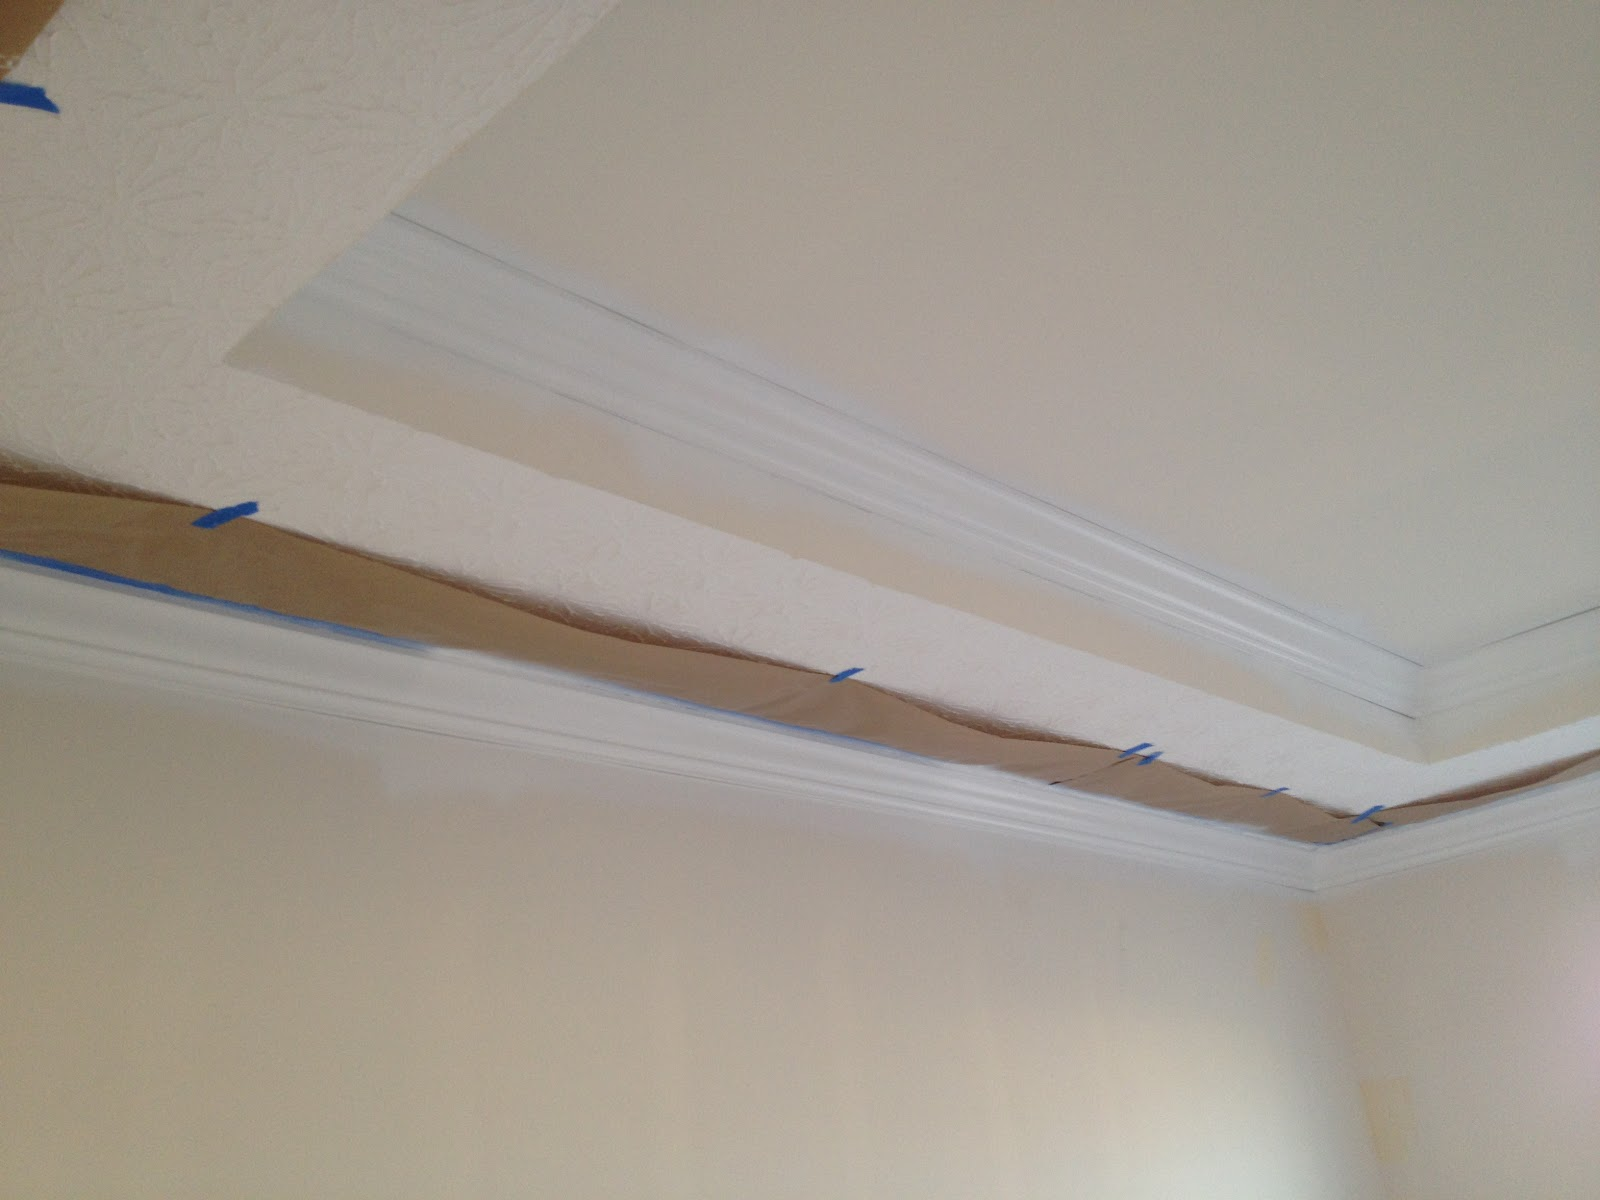 Tray Ceiling Molding: Building Our Yorkshire With Ryan Homes: Don't Mess With A